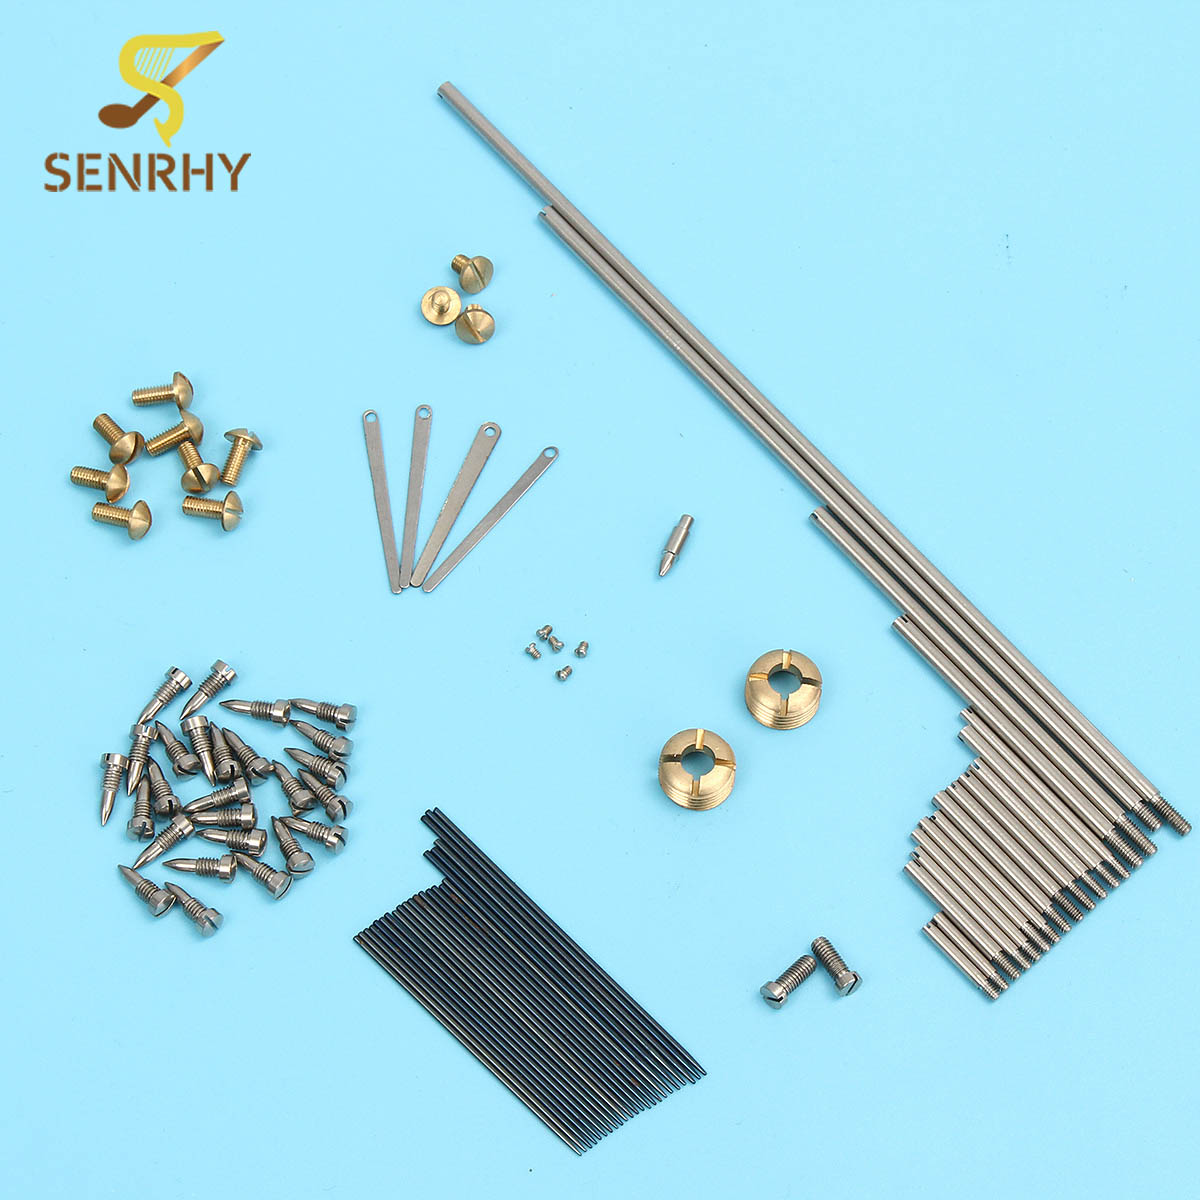 1Set Alto Sax Repair Parts New Screws+Saxophone Springs For Saxophone Woodwind Instruments Parts & Accessories